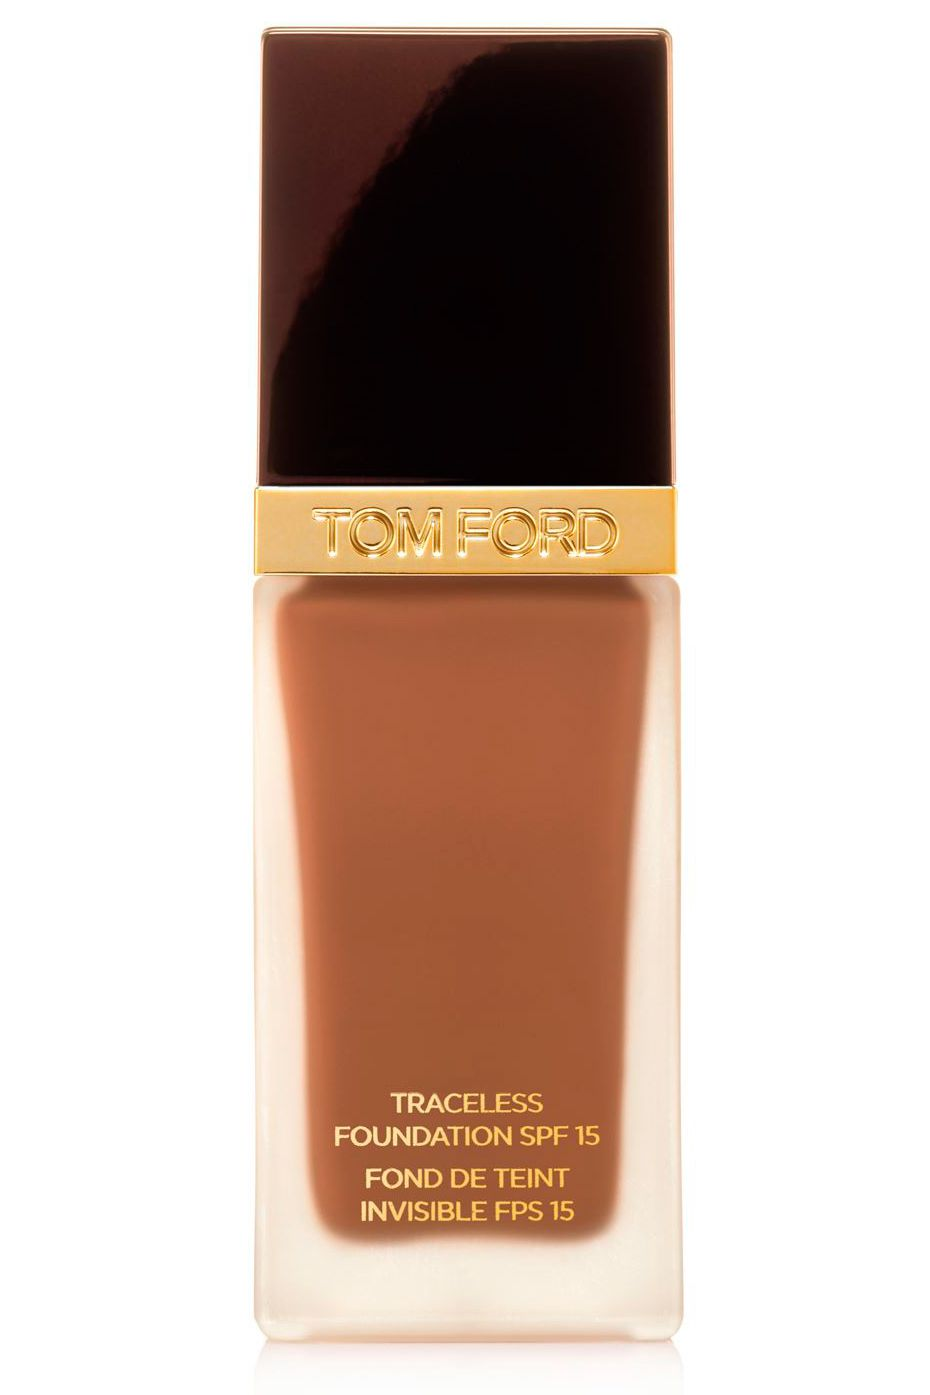 Tom Ford Traceless Foundation SPF15